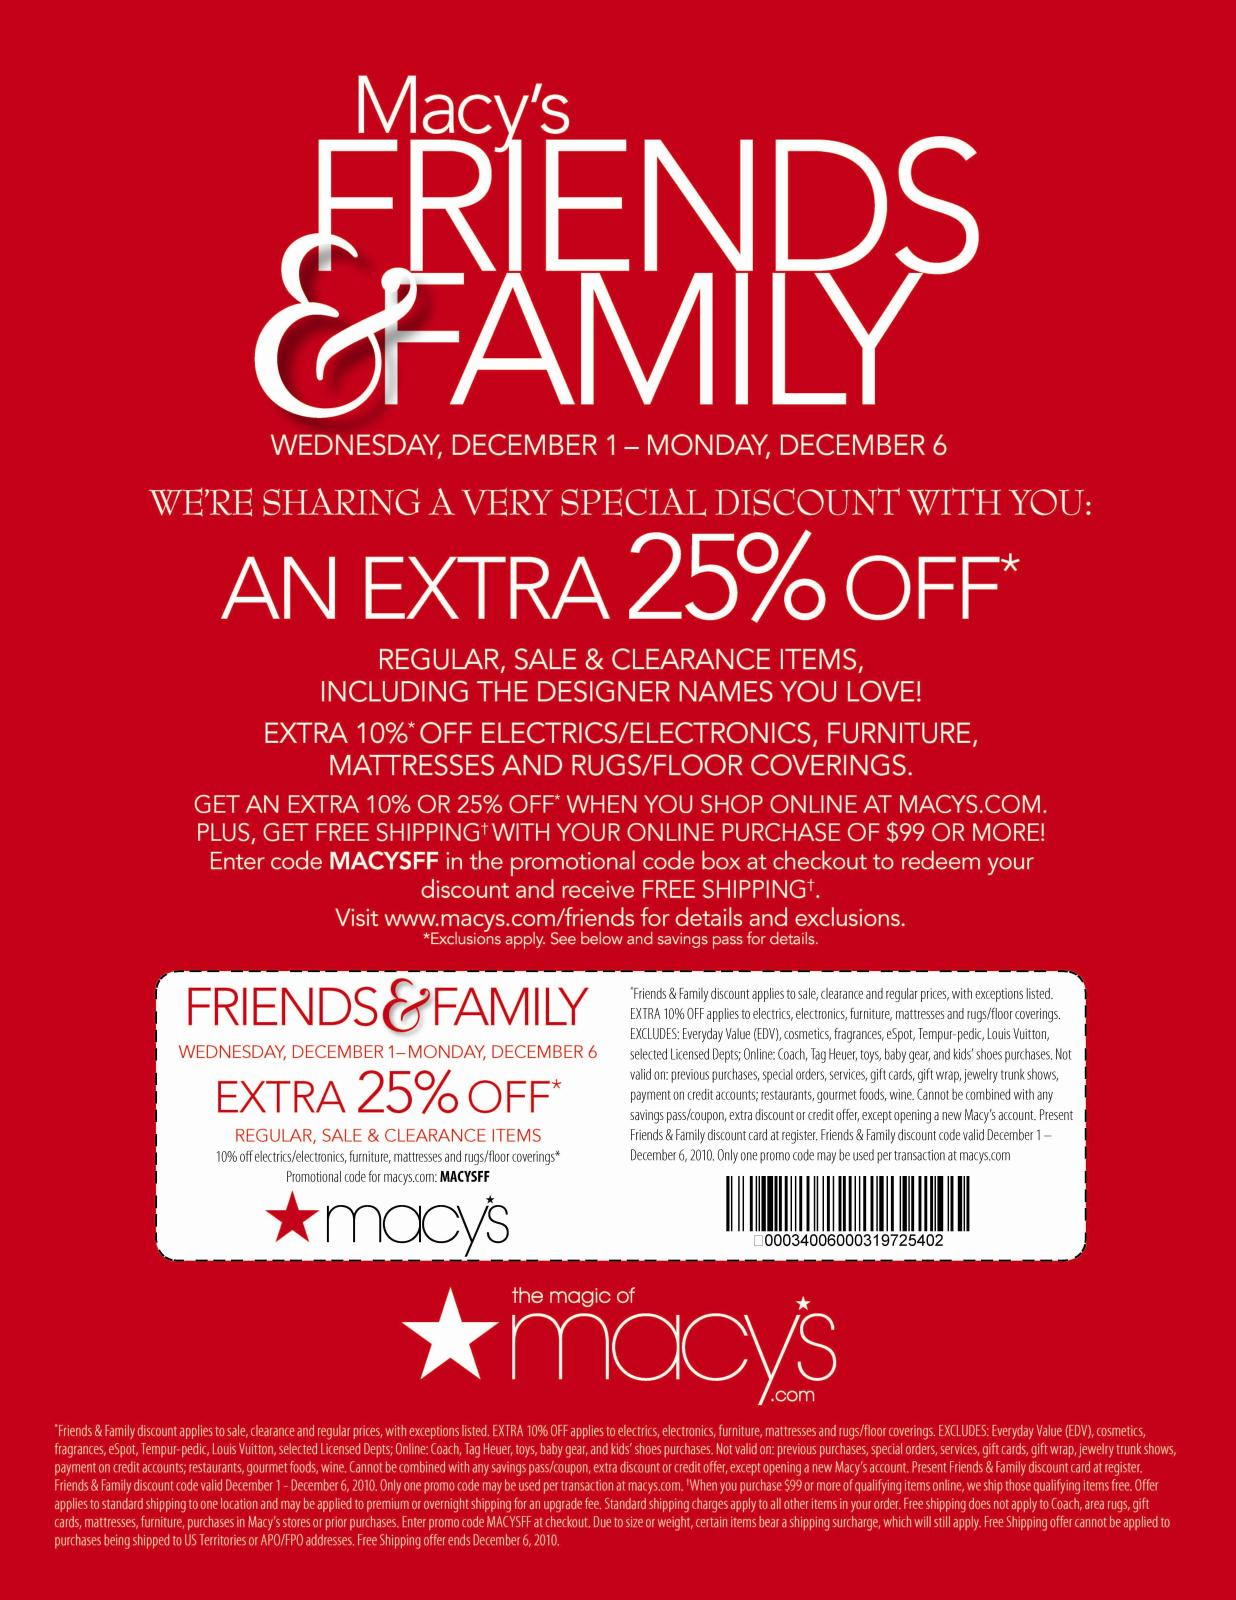 Best Home Goods Stores Printable Macy S Coupons Printable Coupons Online